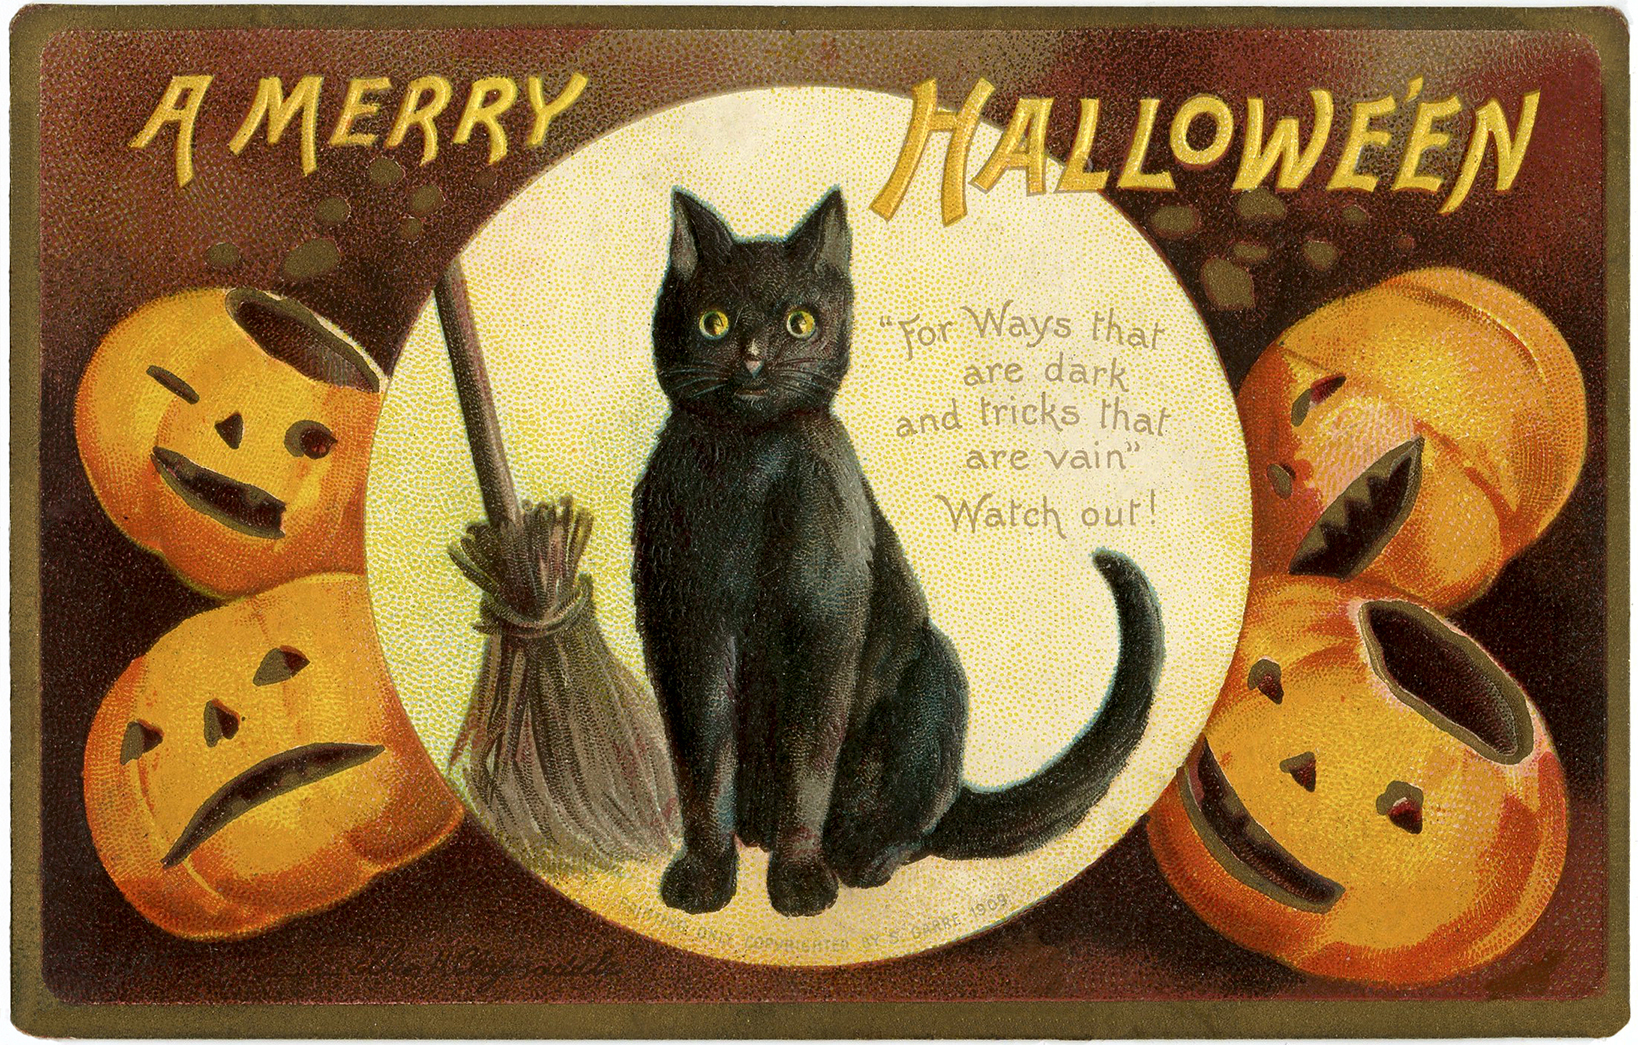 Cute Vintage Halloween Cat Image - The Graphics Fairy